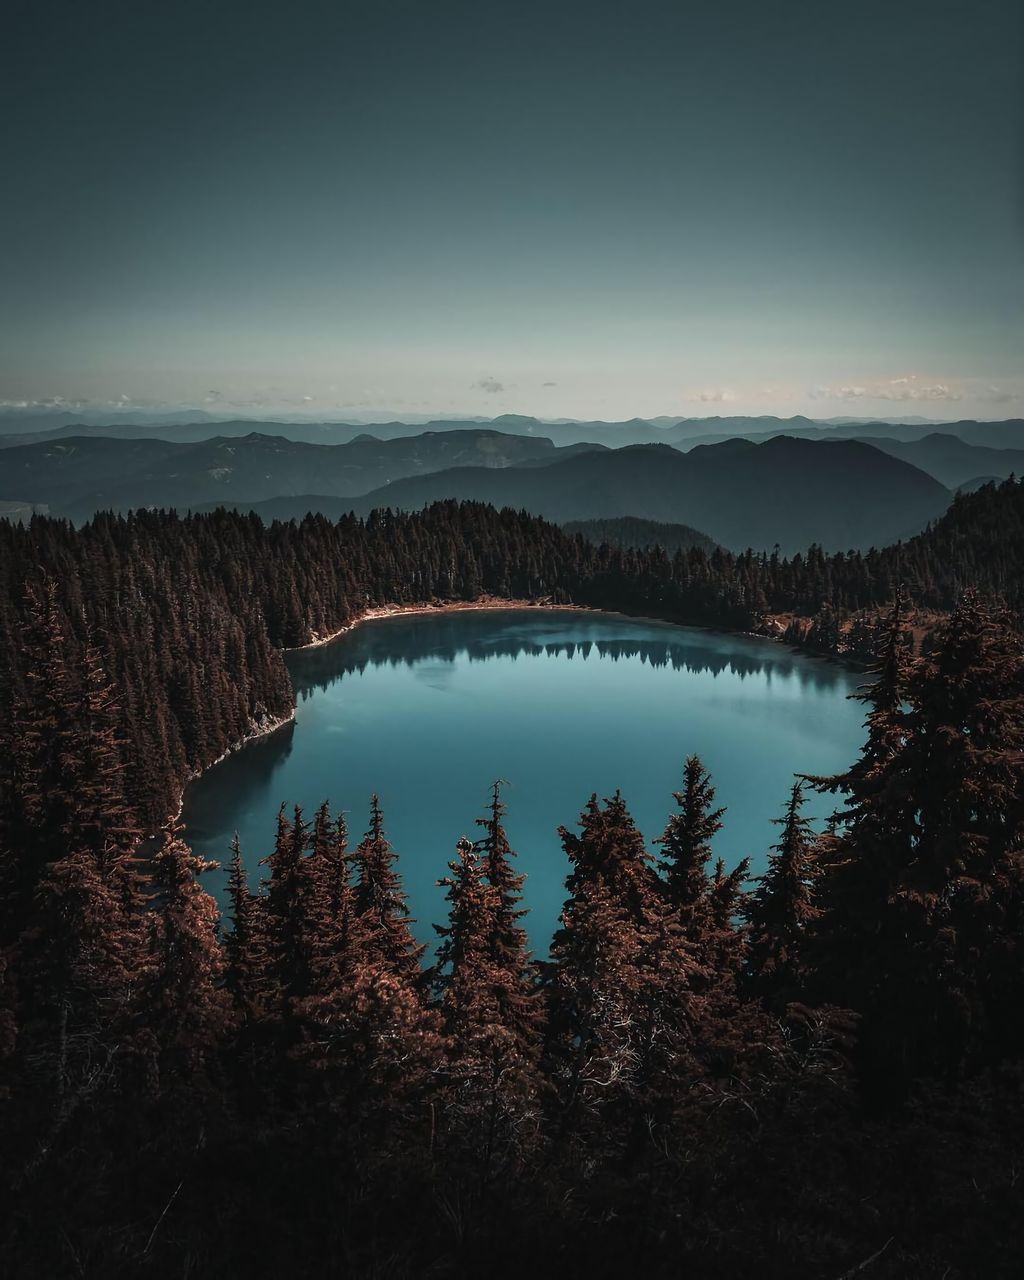 scenics - nature, beauty in nature, tranquil scene, tranquility, sky, tree, mountain, non-urban scene, water, plant, nature, no people, idyllic, lake, mountain range, forest, landscape, environment, remote